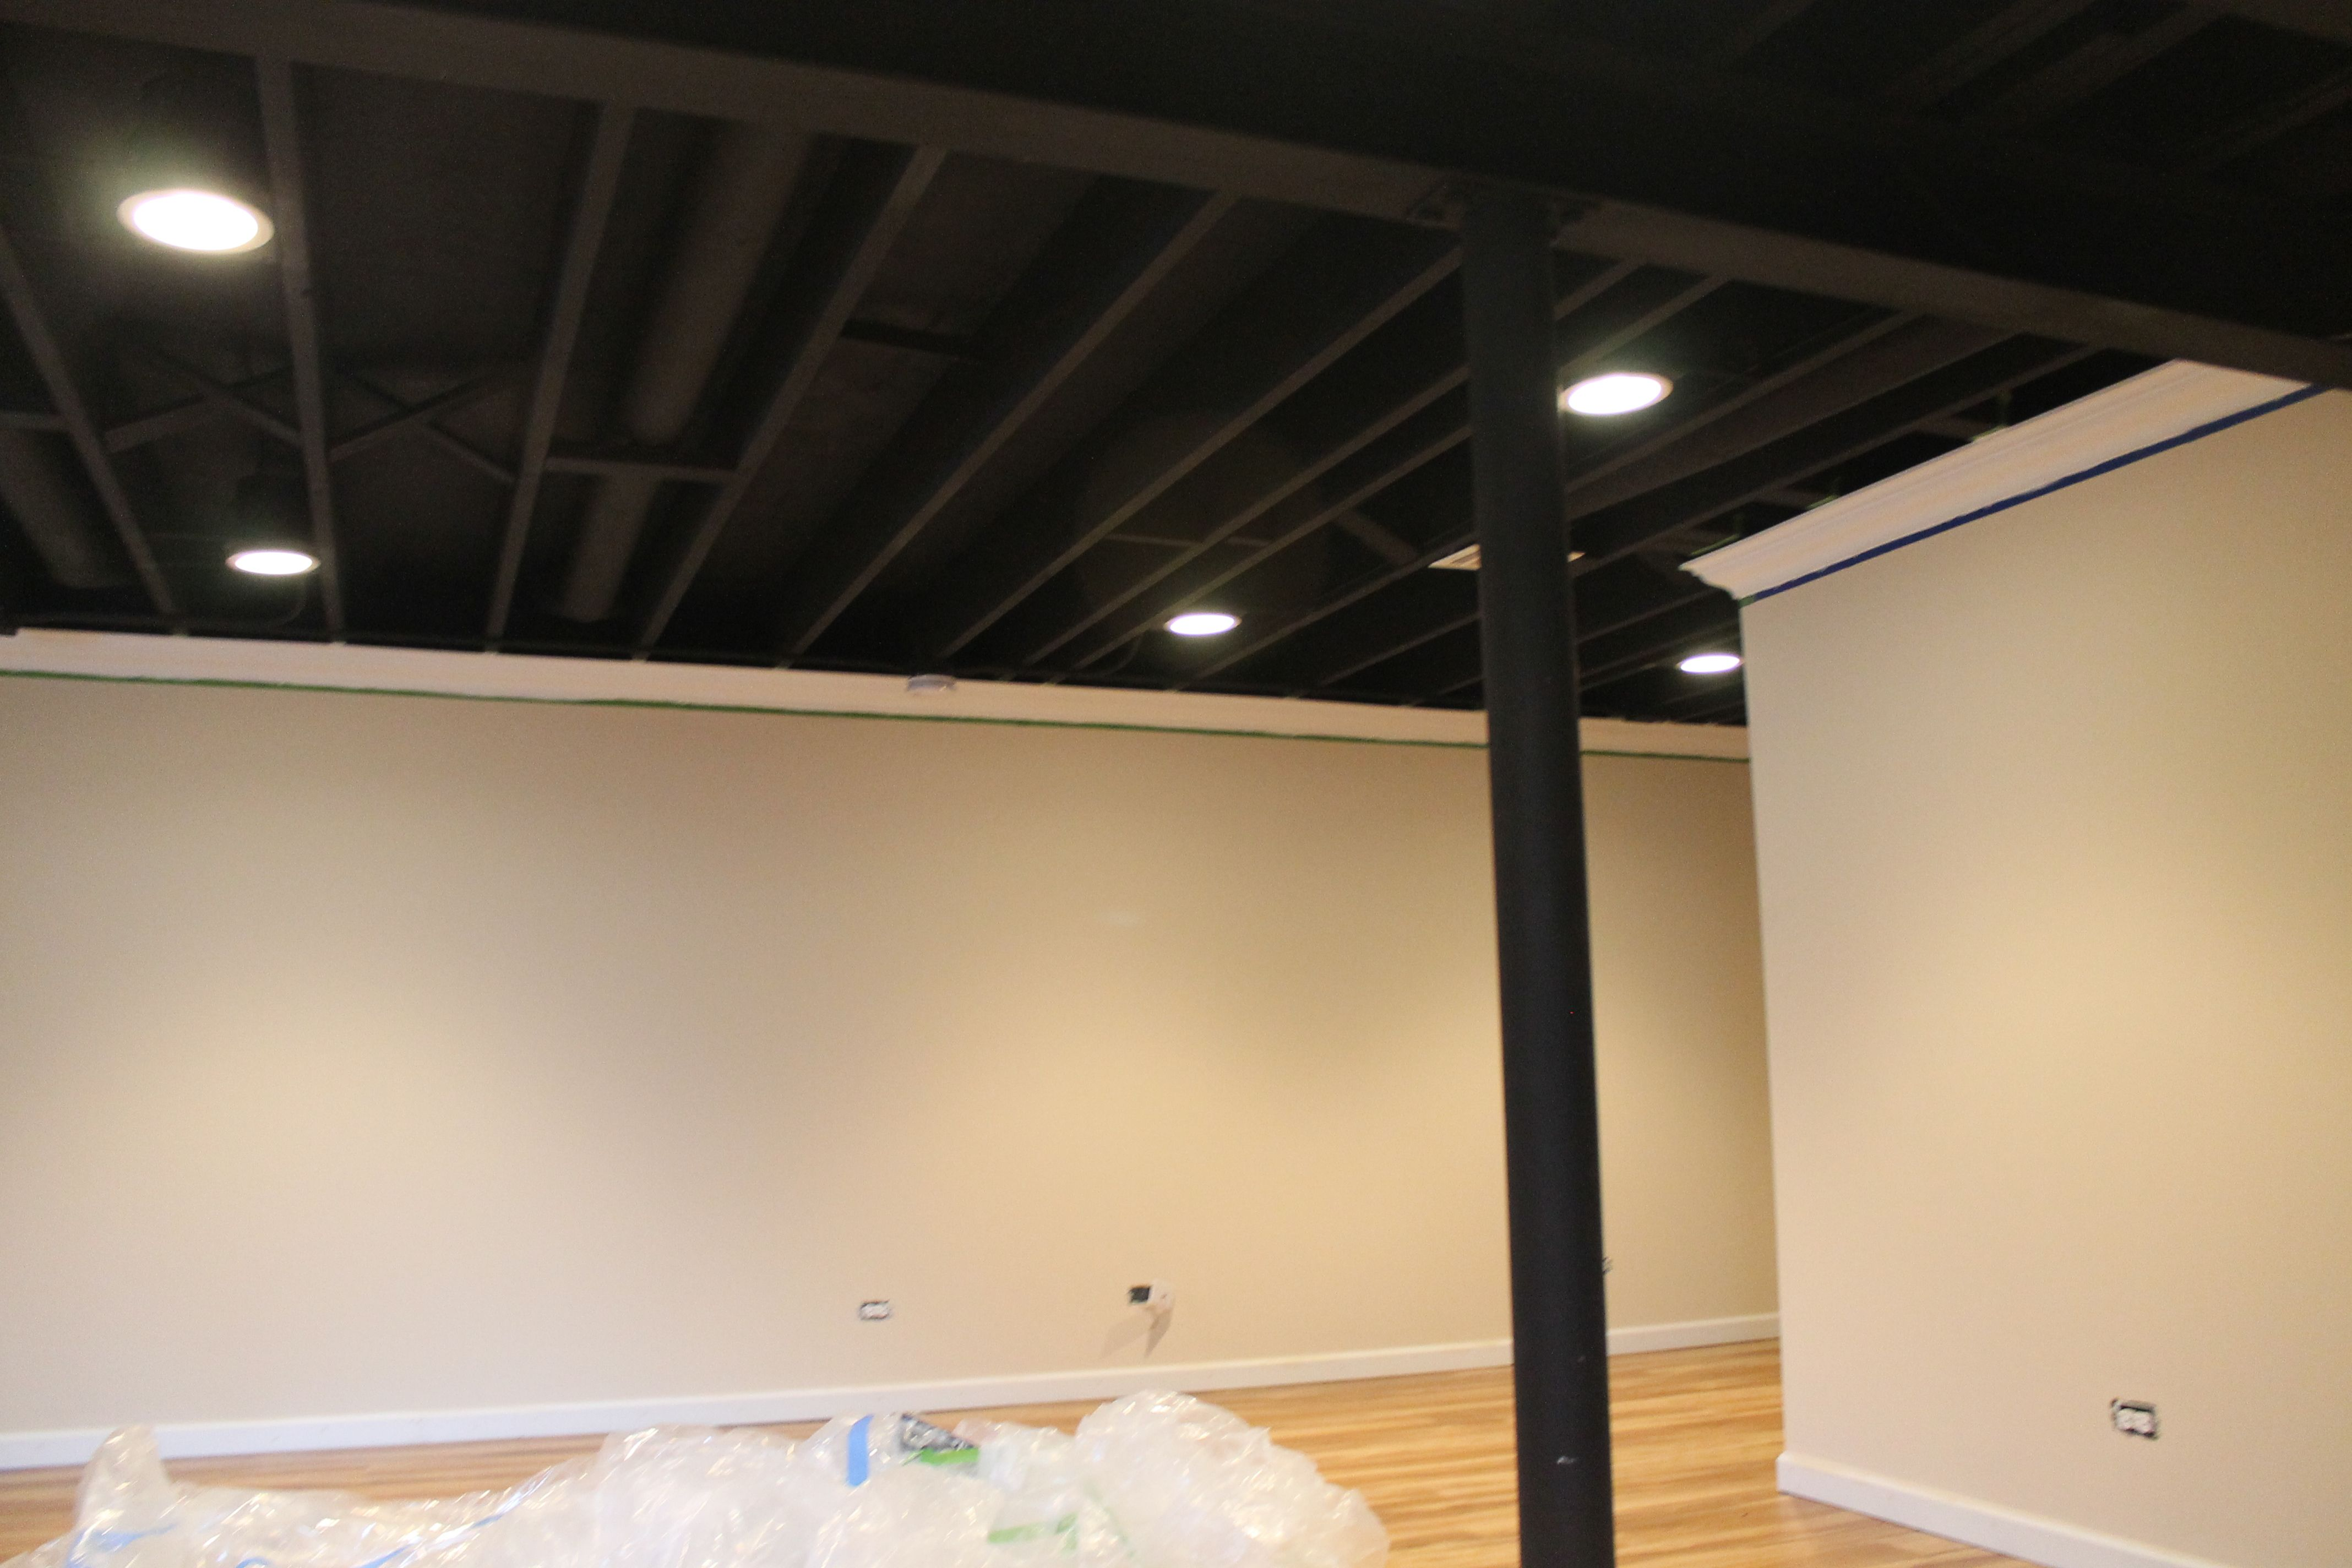 Painted Black Ceiling W Crown Molding Basement Remodel - Black ceiling basement